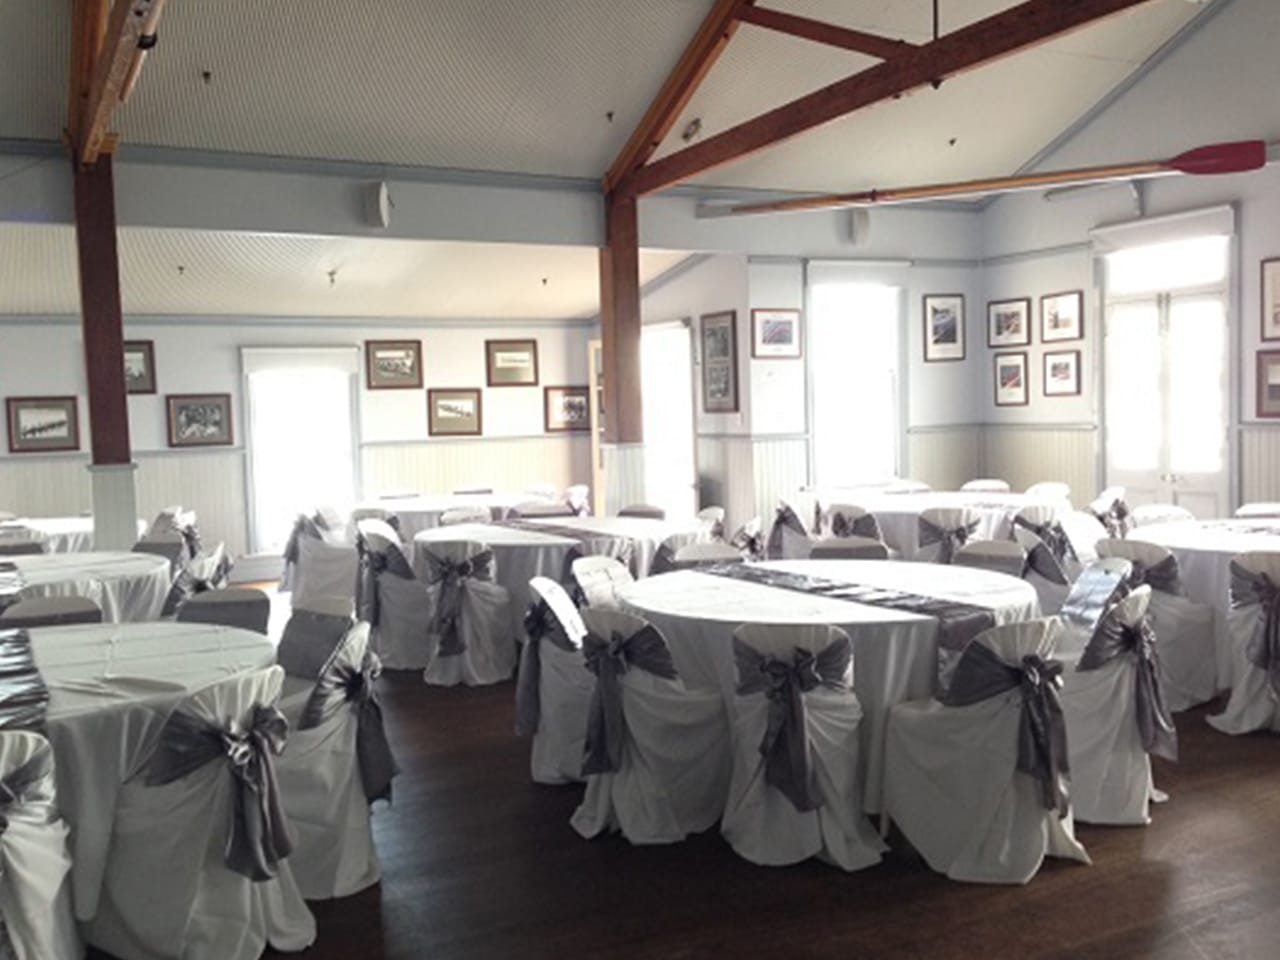 Chairs And Tables In Banquet Style Inside The Function Room With Picture Frames On The Wall